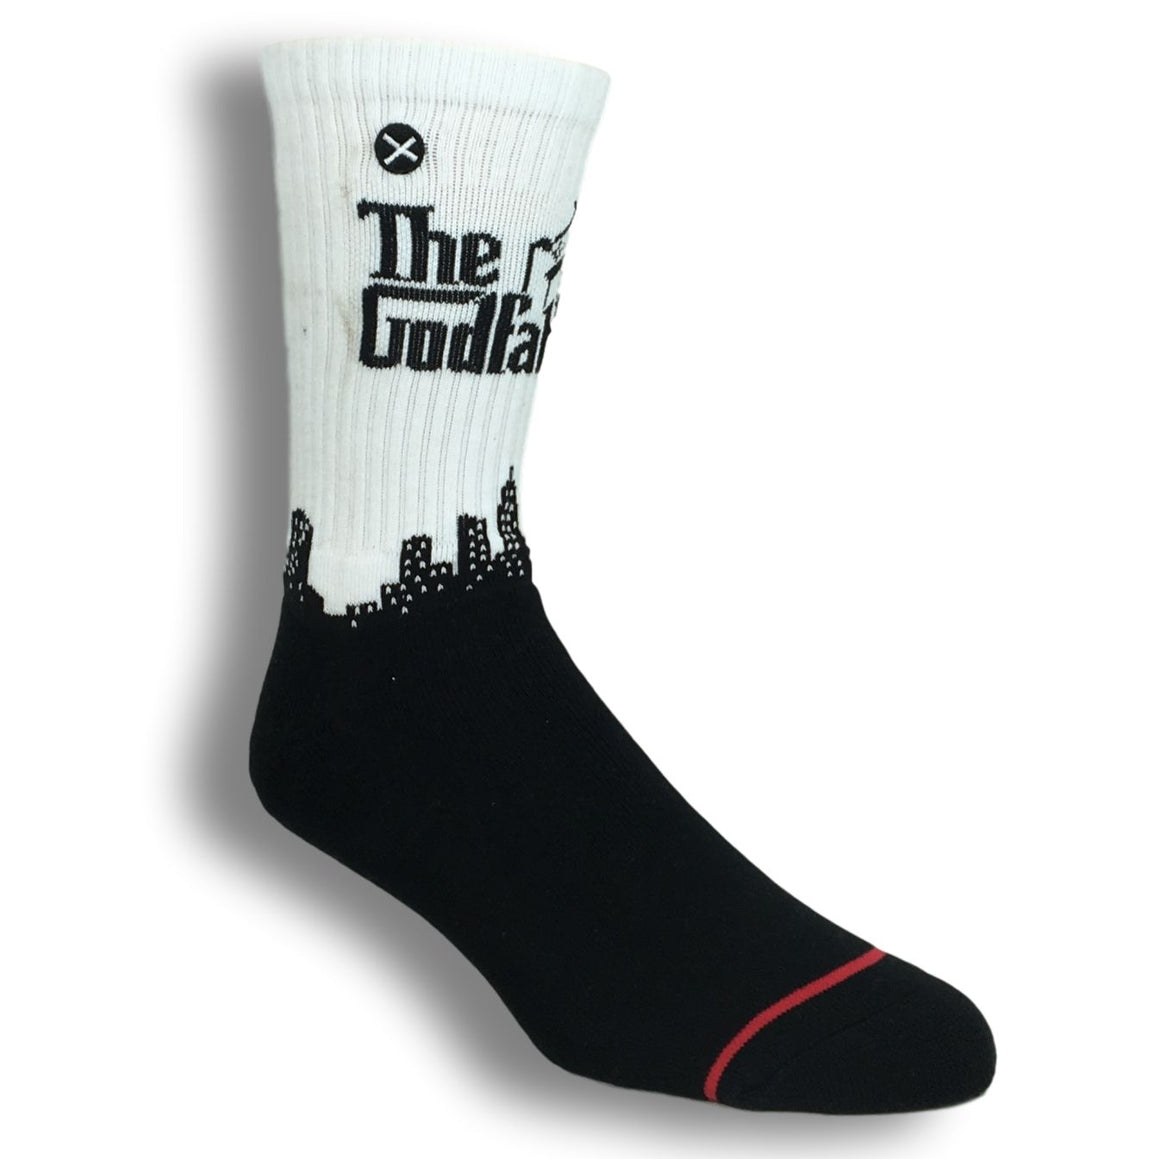 The Godfather Logo Athletic Socks by Odd Sox - The Sock Spot